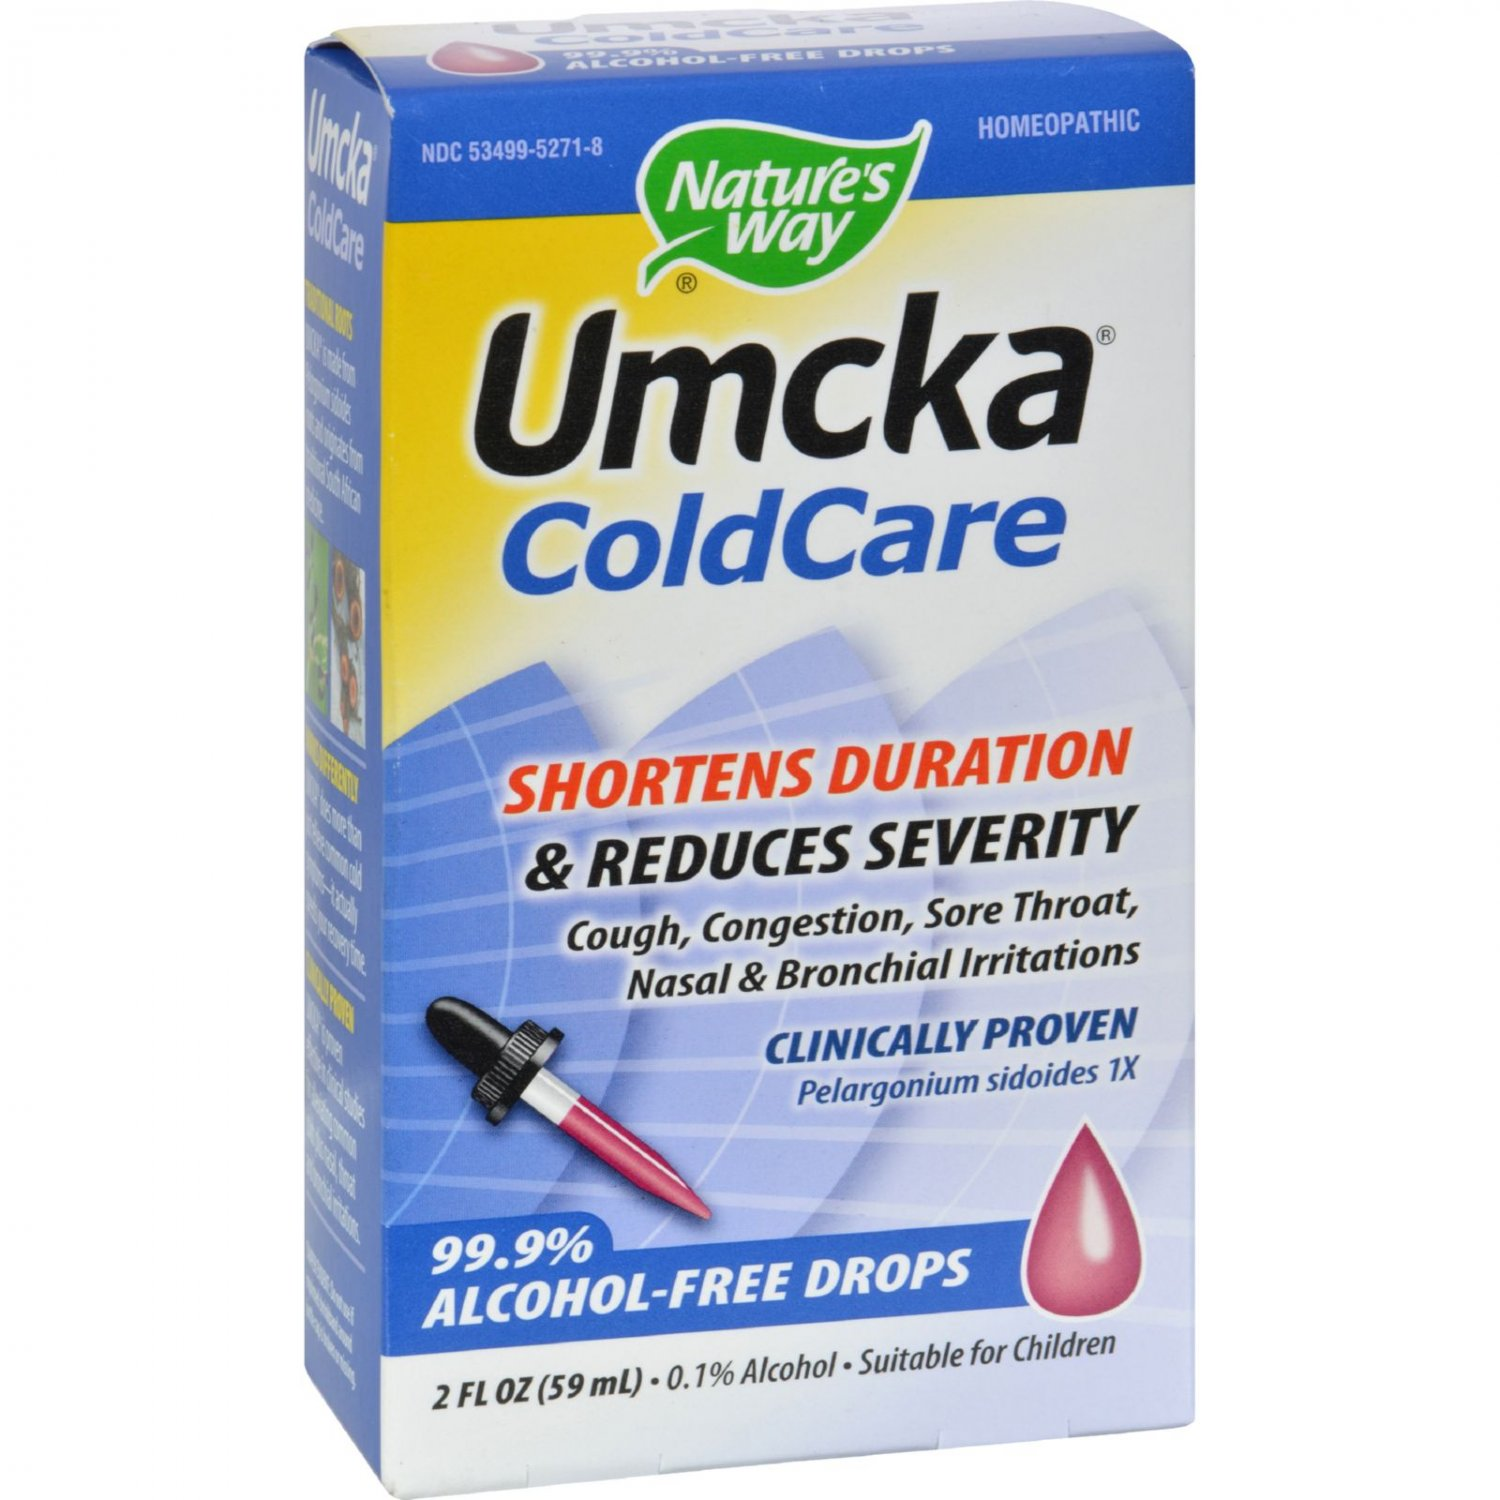 Nature's Way Umcka ColdCare Alcohol-Free Drops - 2 fl oz